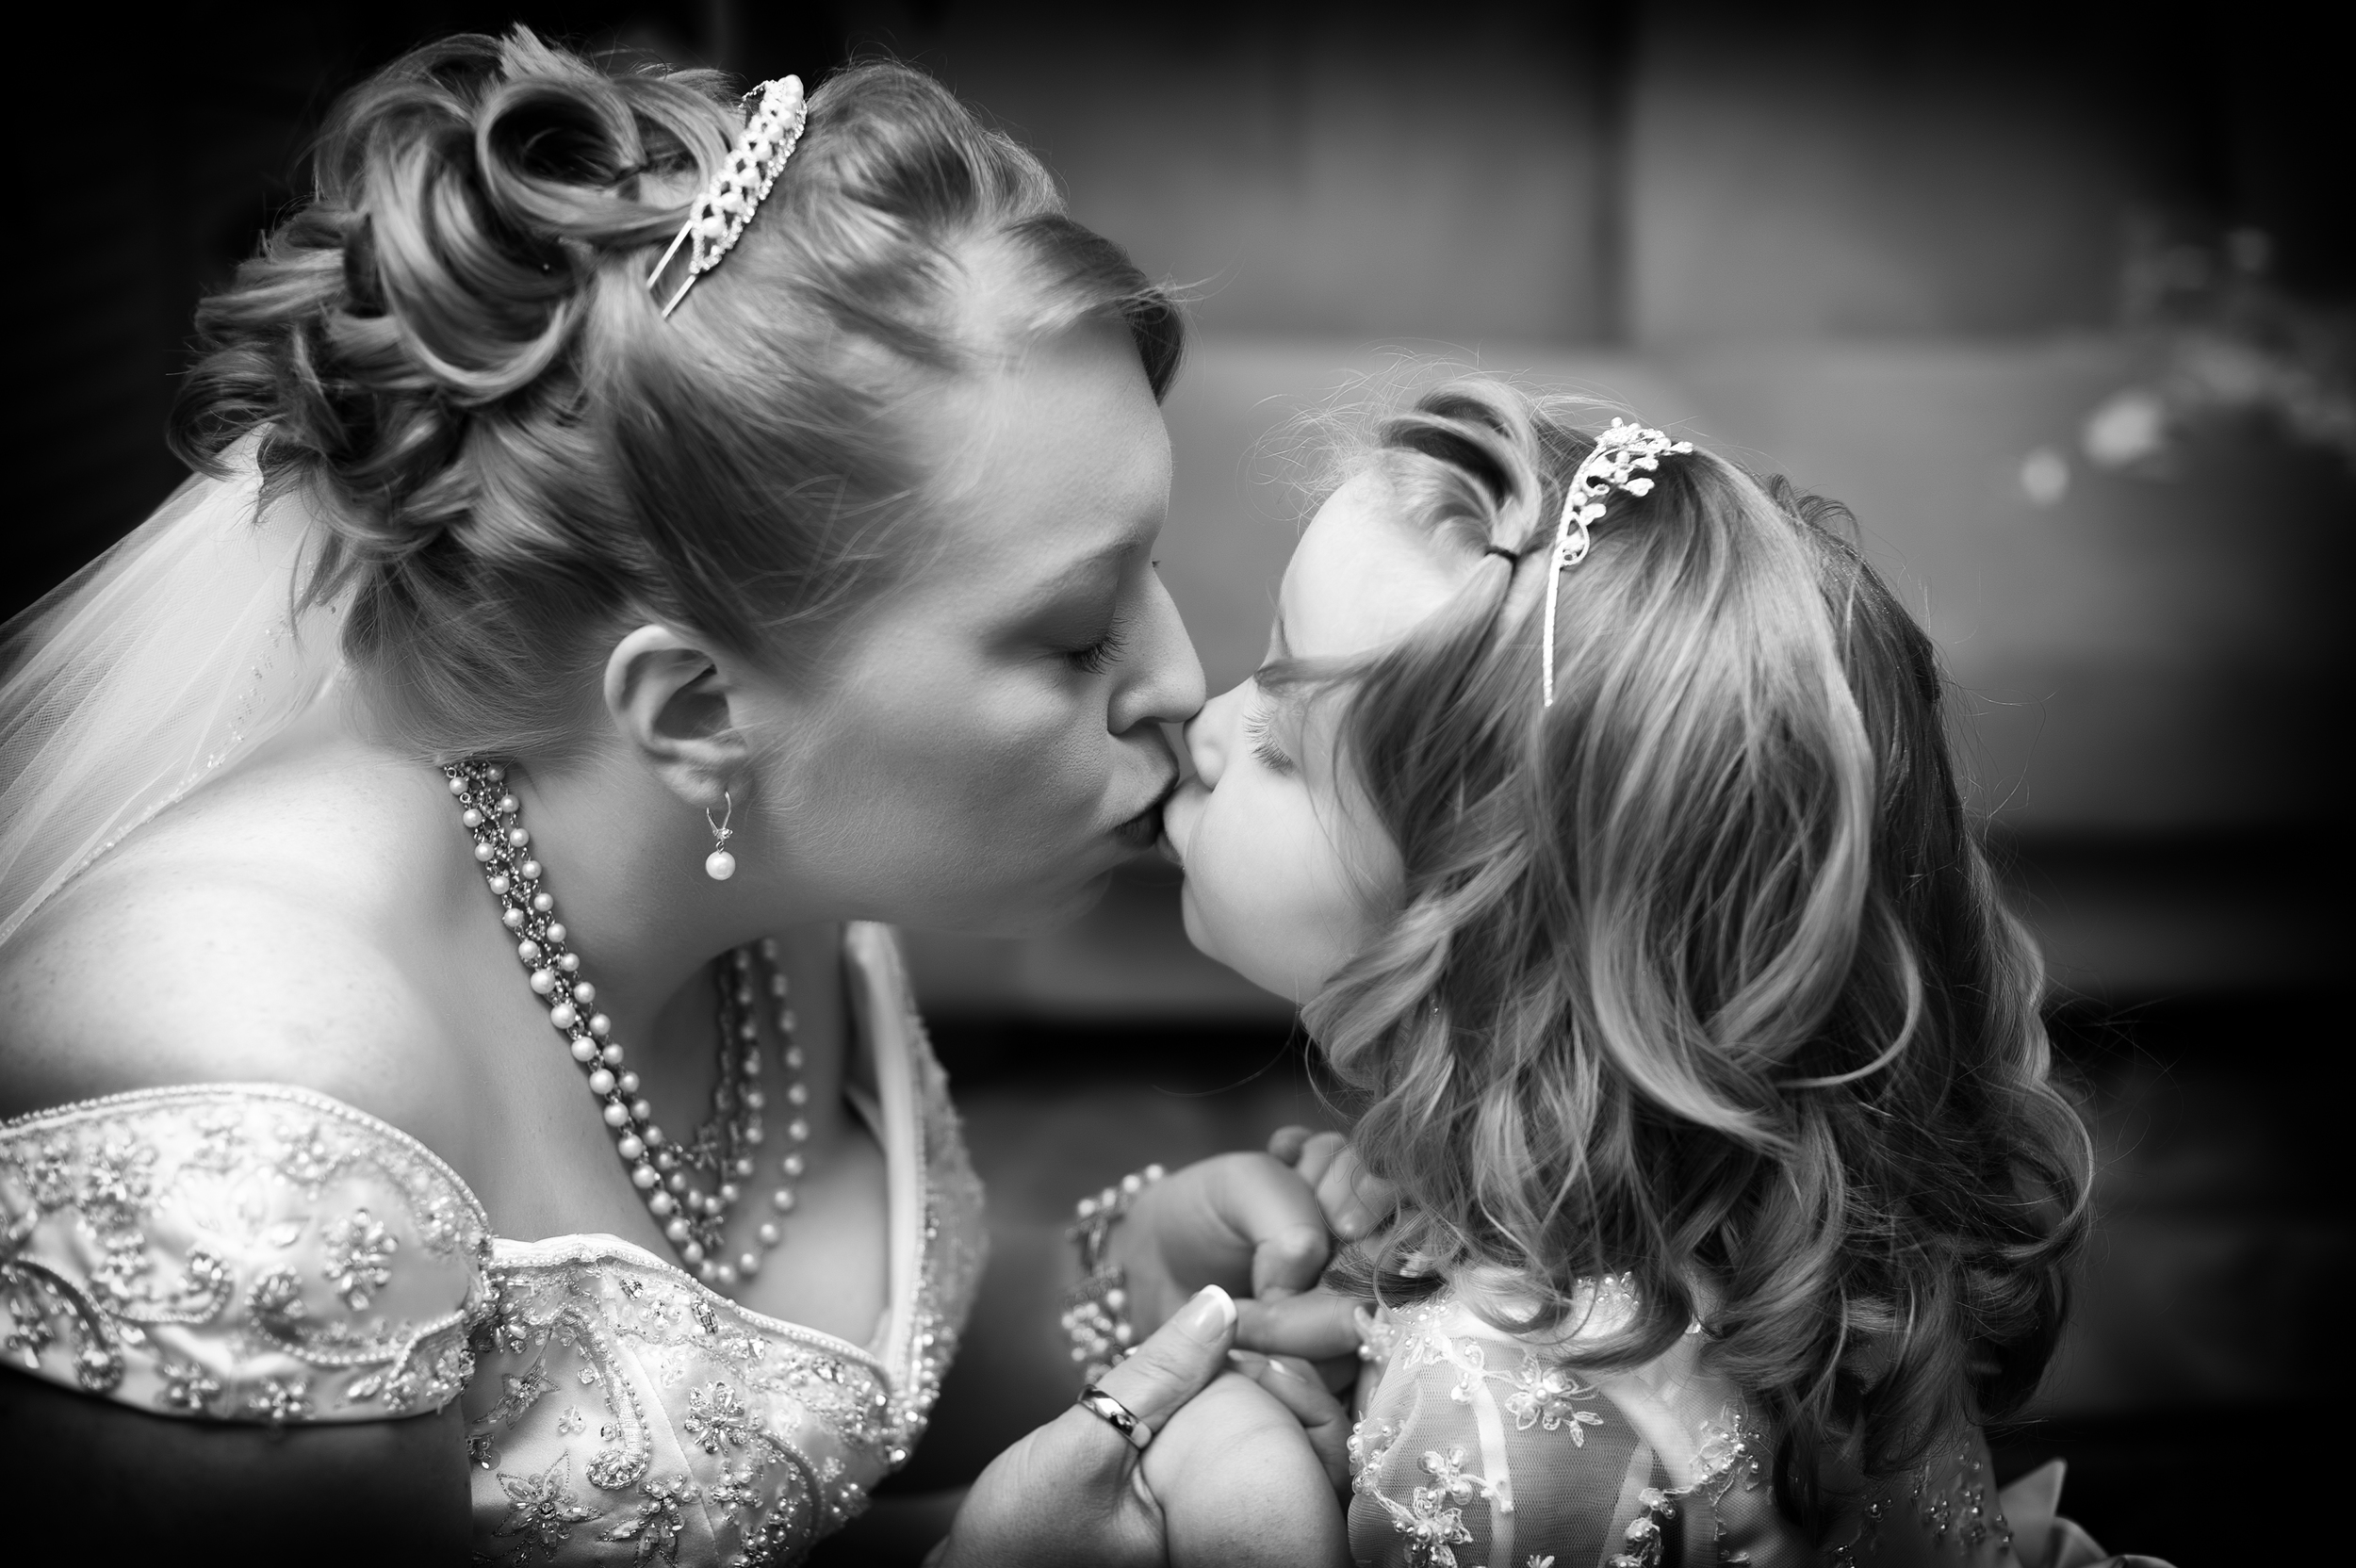 A Bride Kisses her Daughter the Flowergirl on her wedding day, Kenneth Light Studios